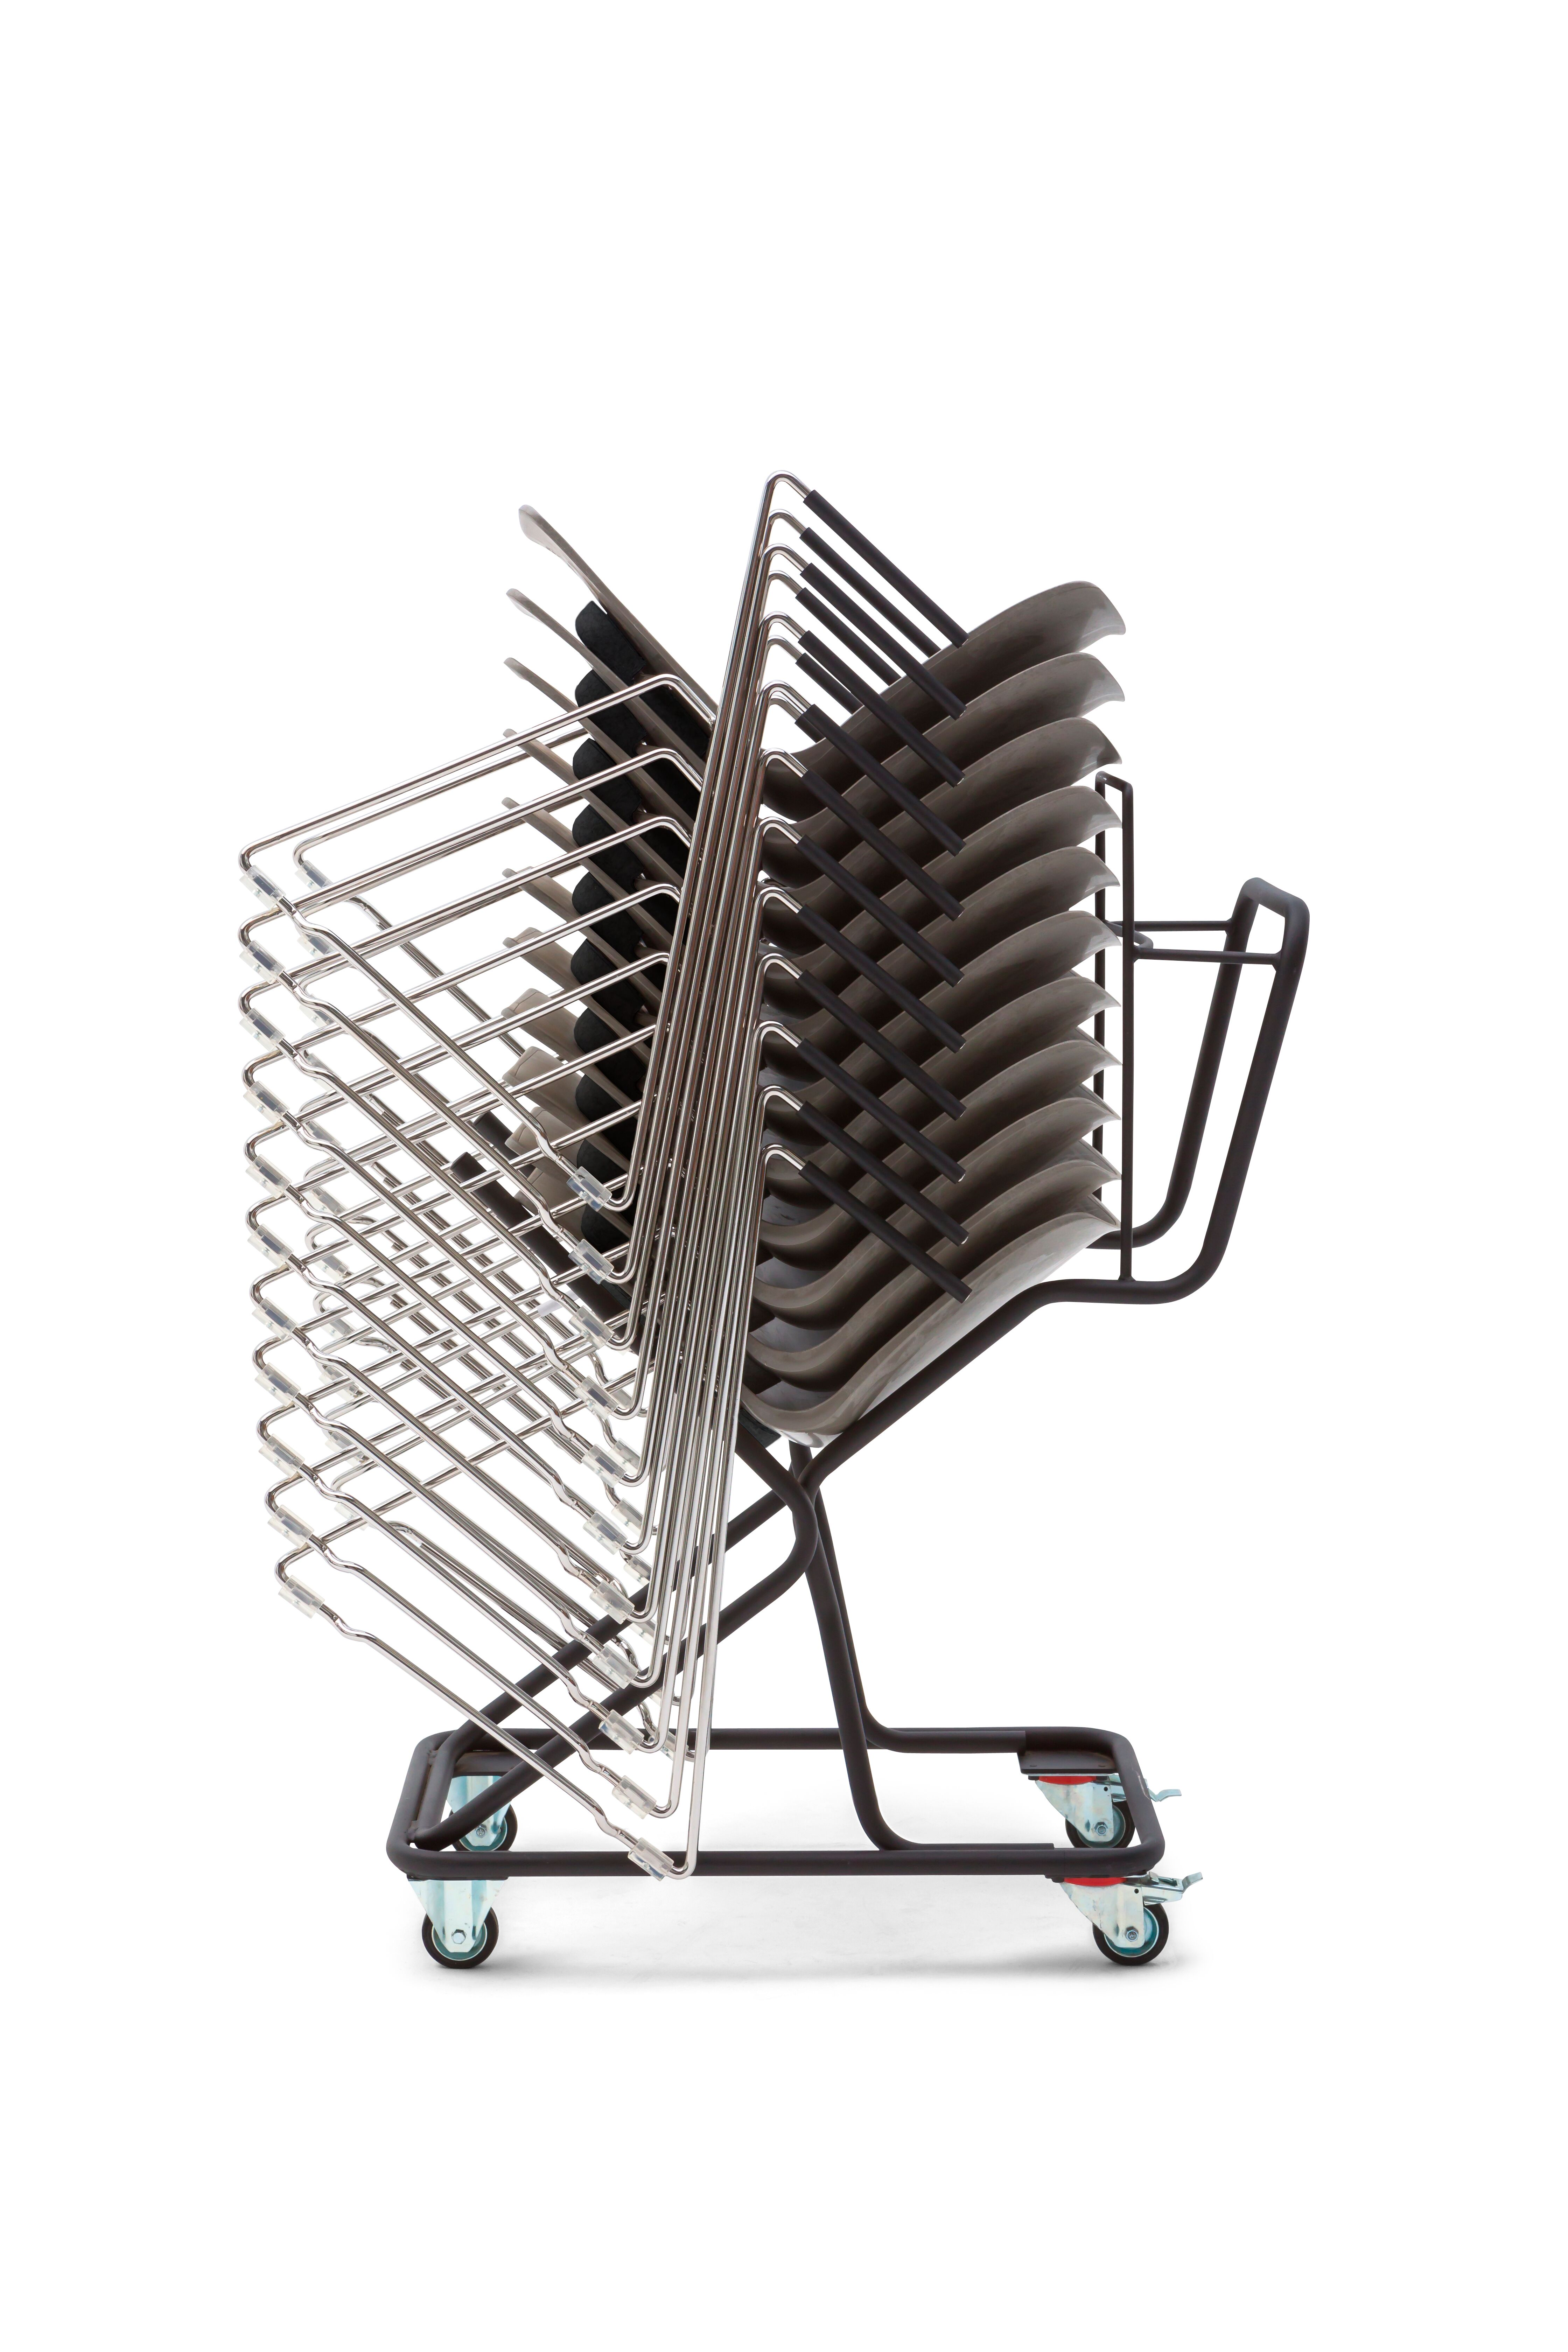 Nomi Project, Nomi Chair Trolley